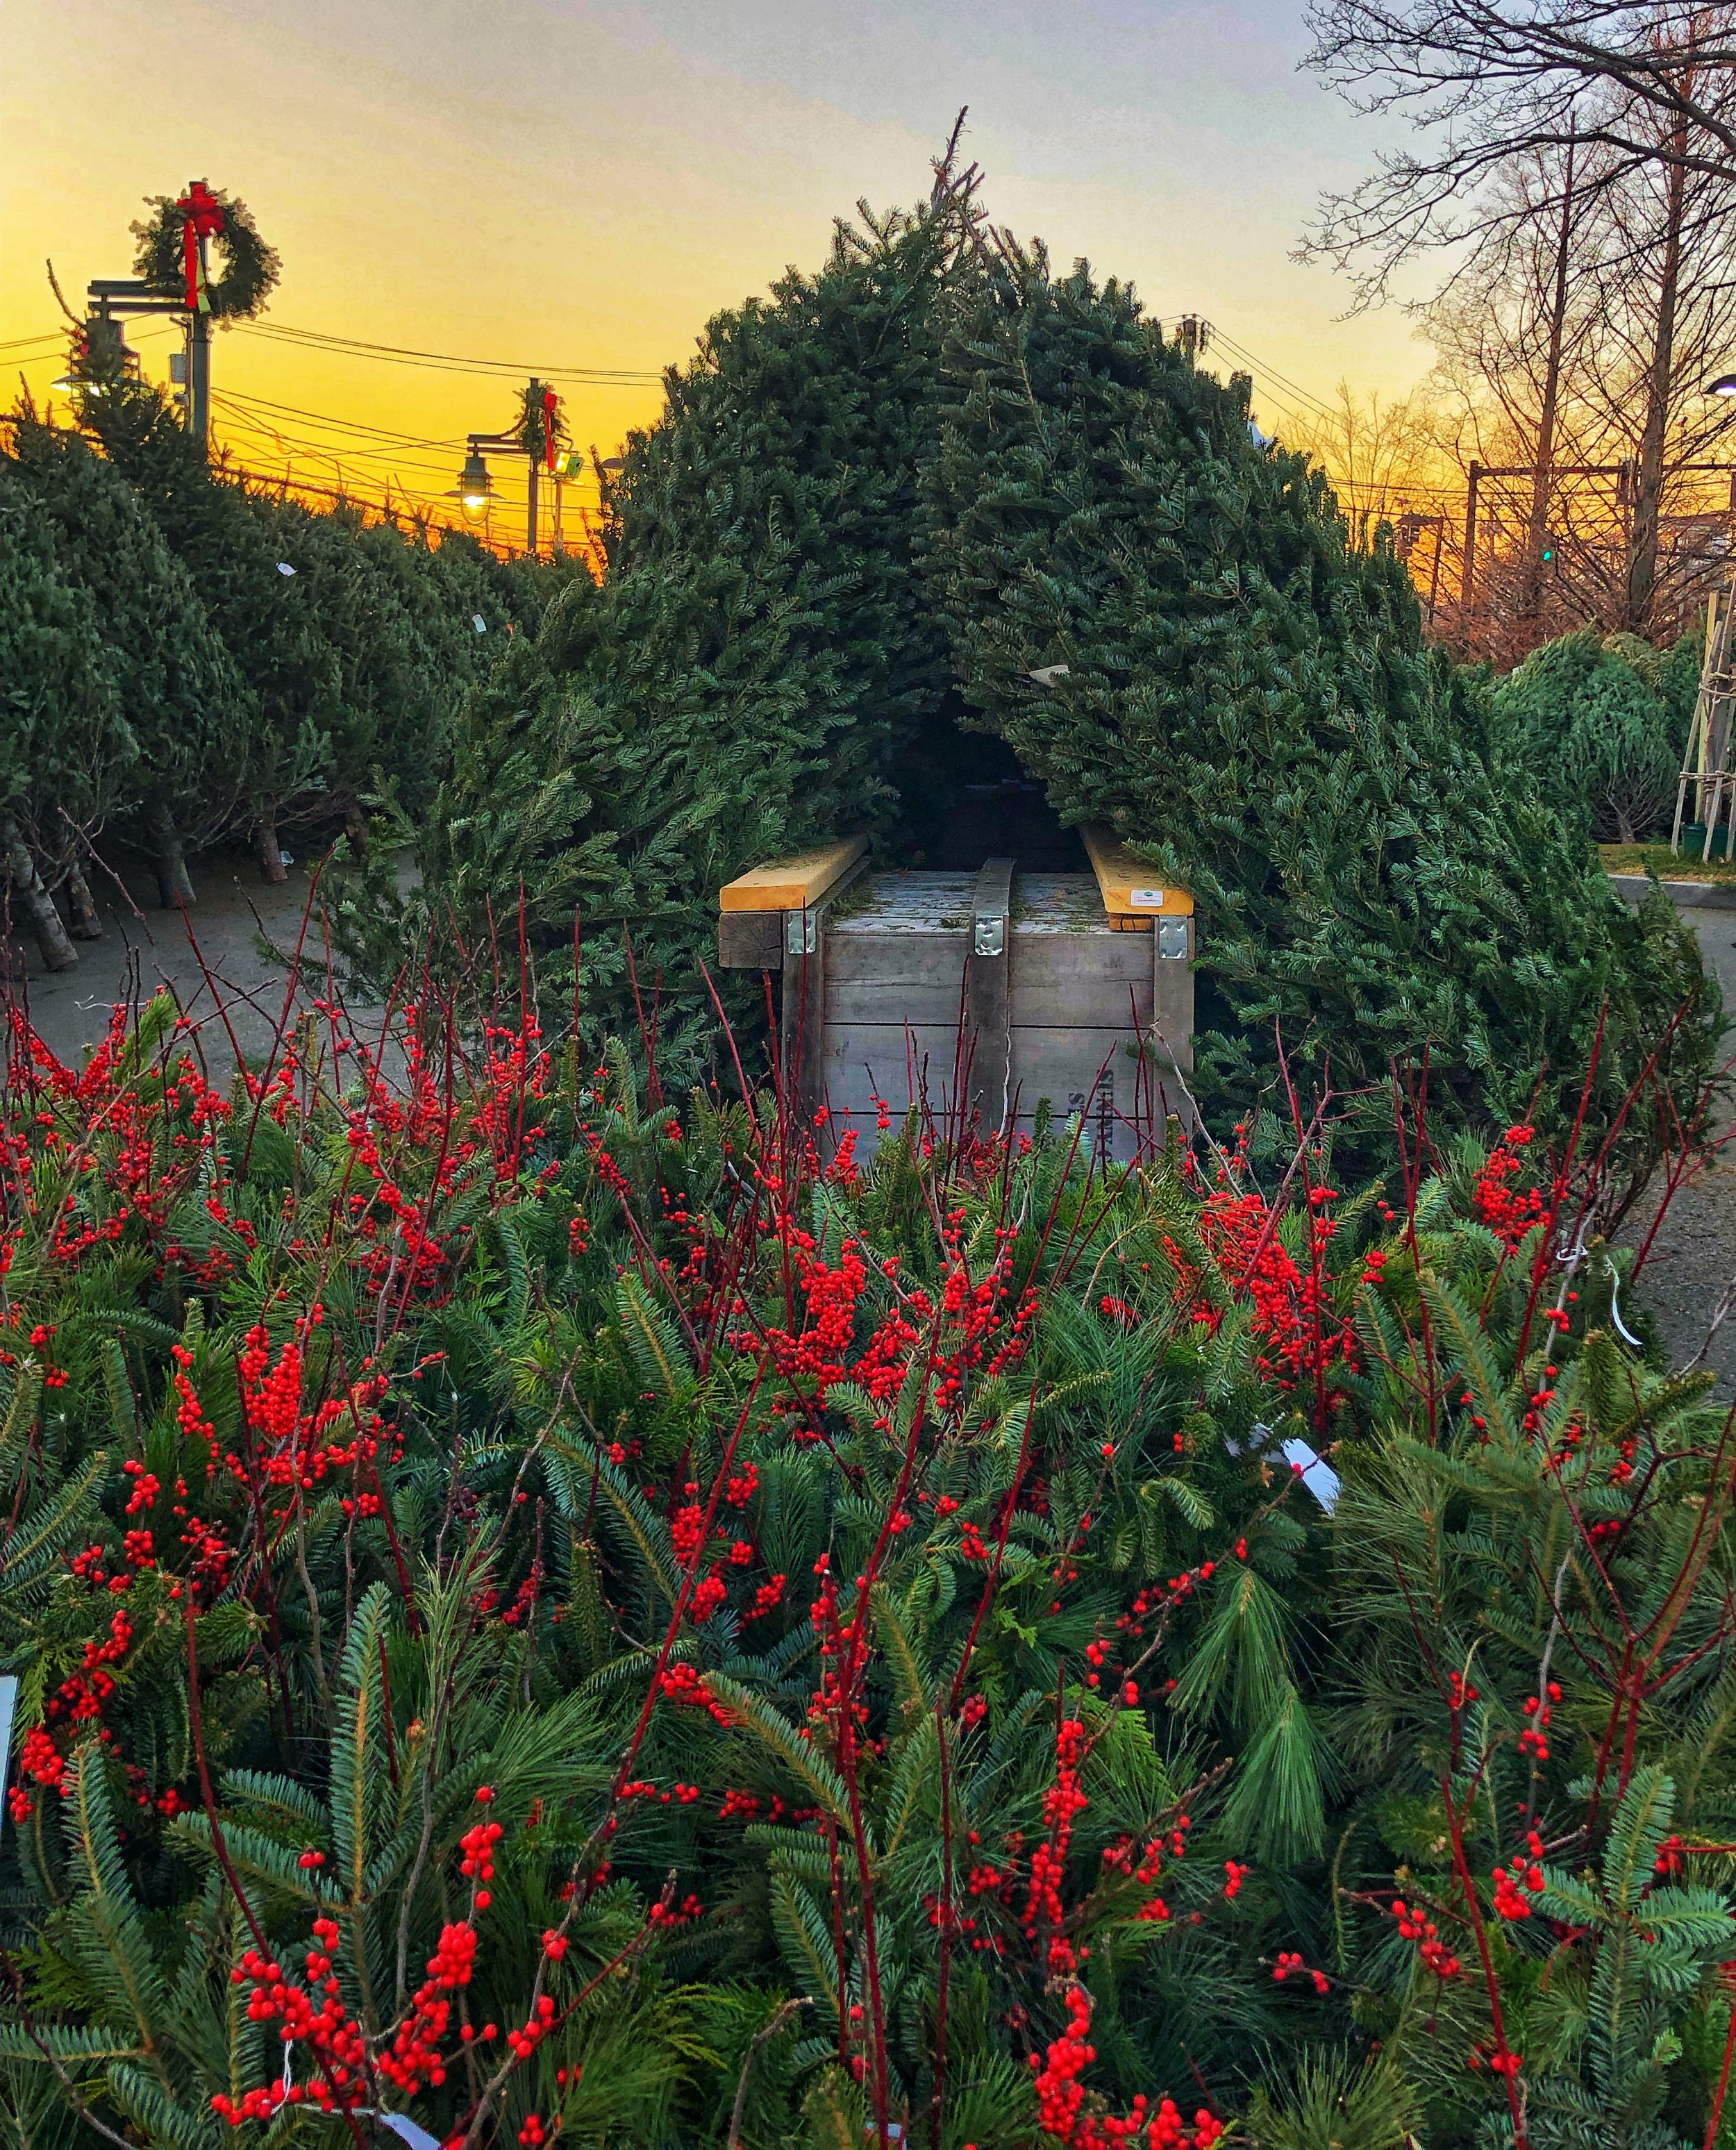 Christmas Trees and berry decorations at sunset at Russo's.